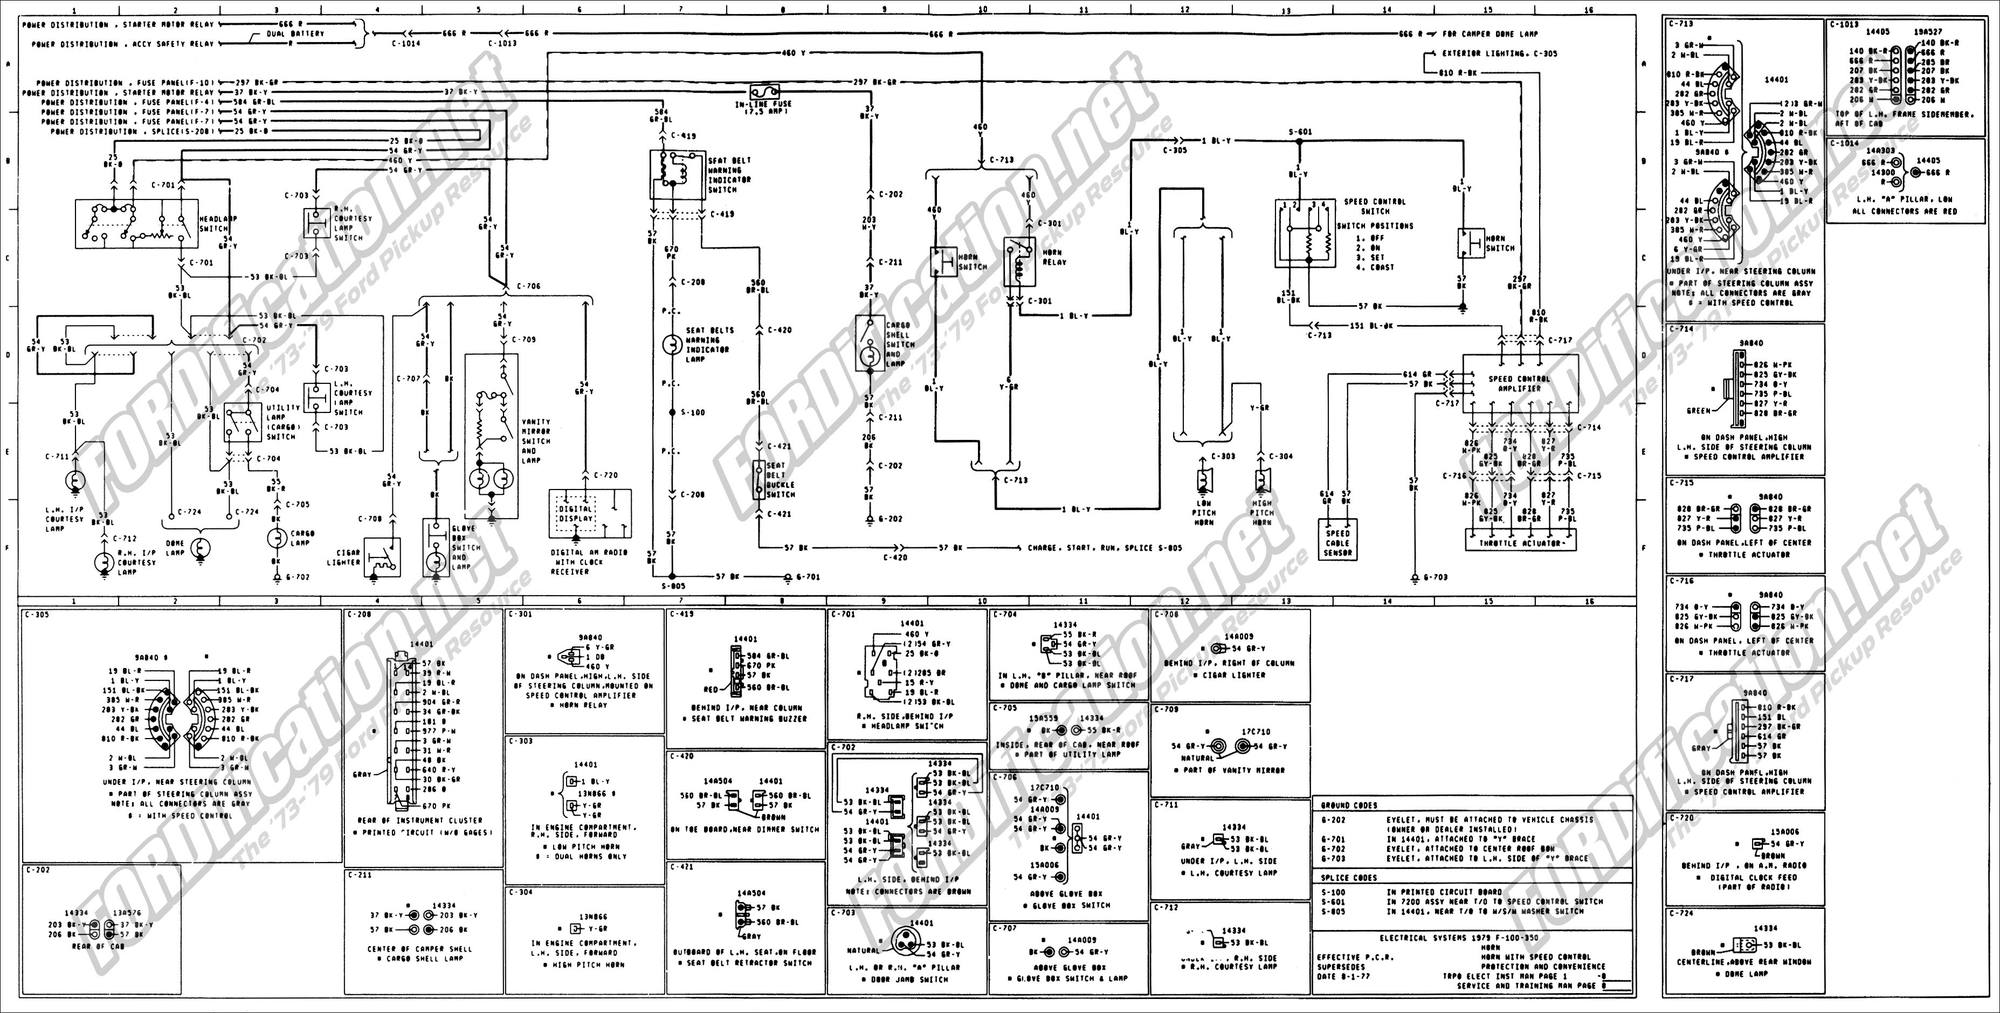 2011 ford f650 wiring schematic 2007 ford f650 wiring schematic wiring diagram ford truck enthusiasts forums